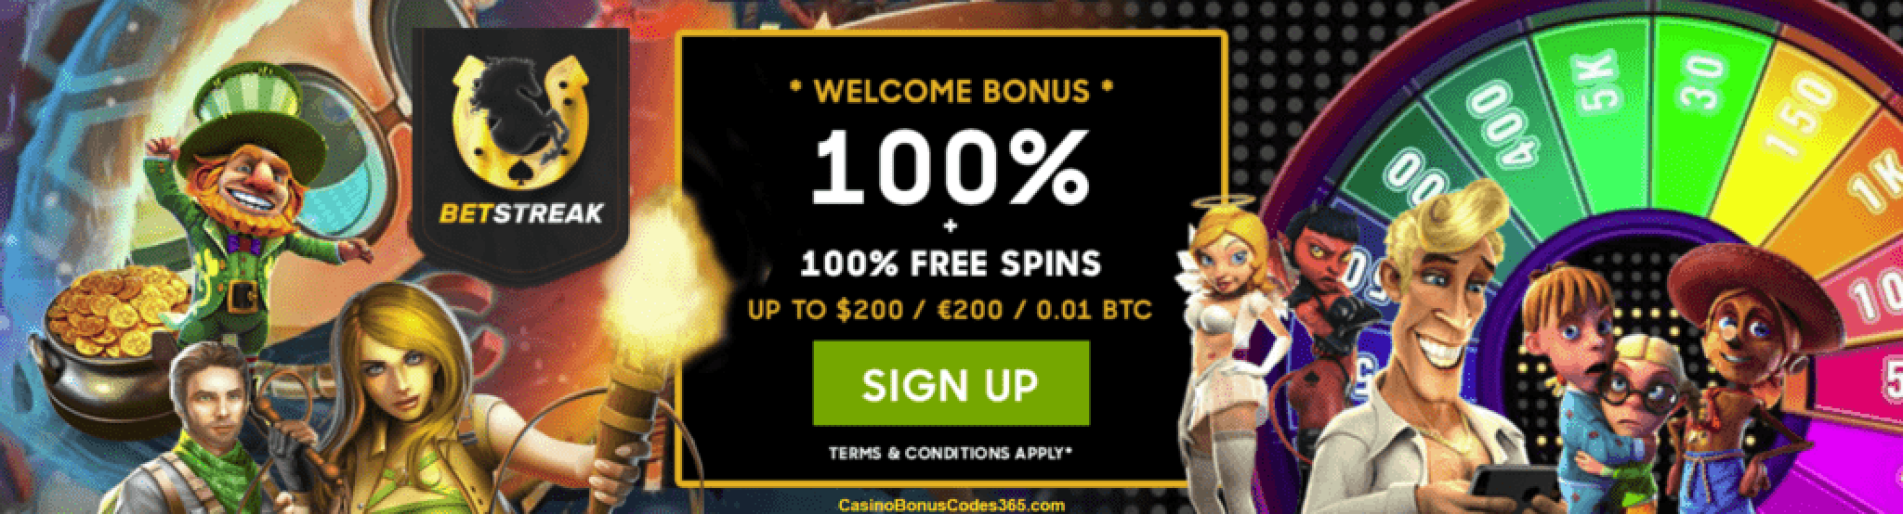 bitcoin casino 150 free spins